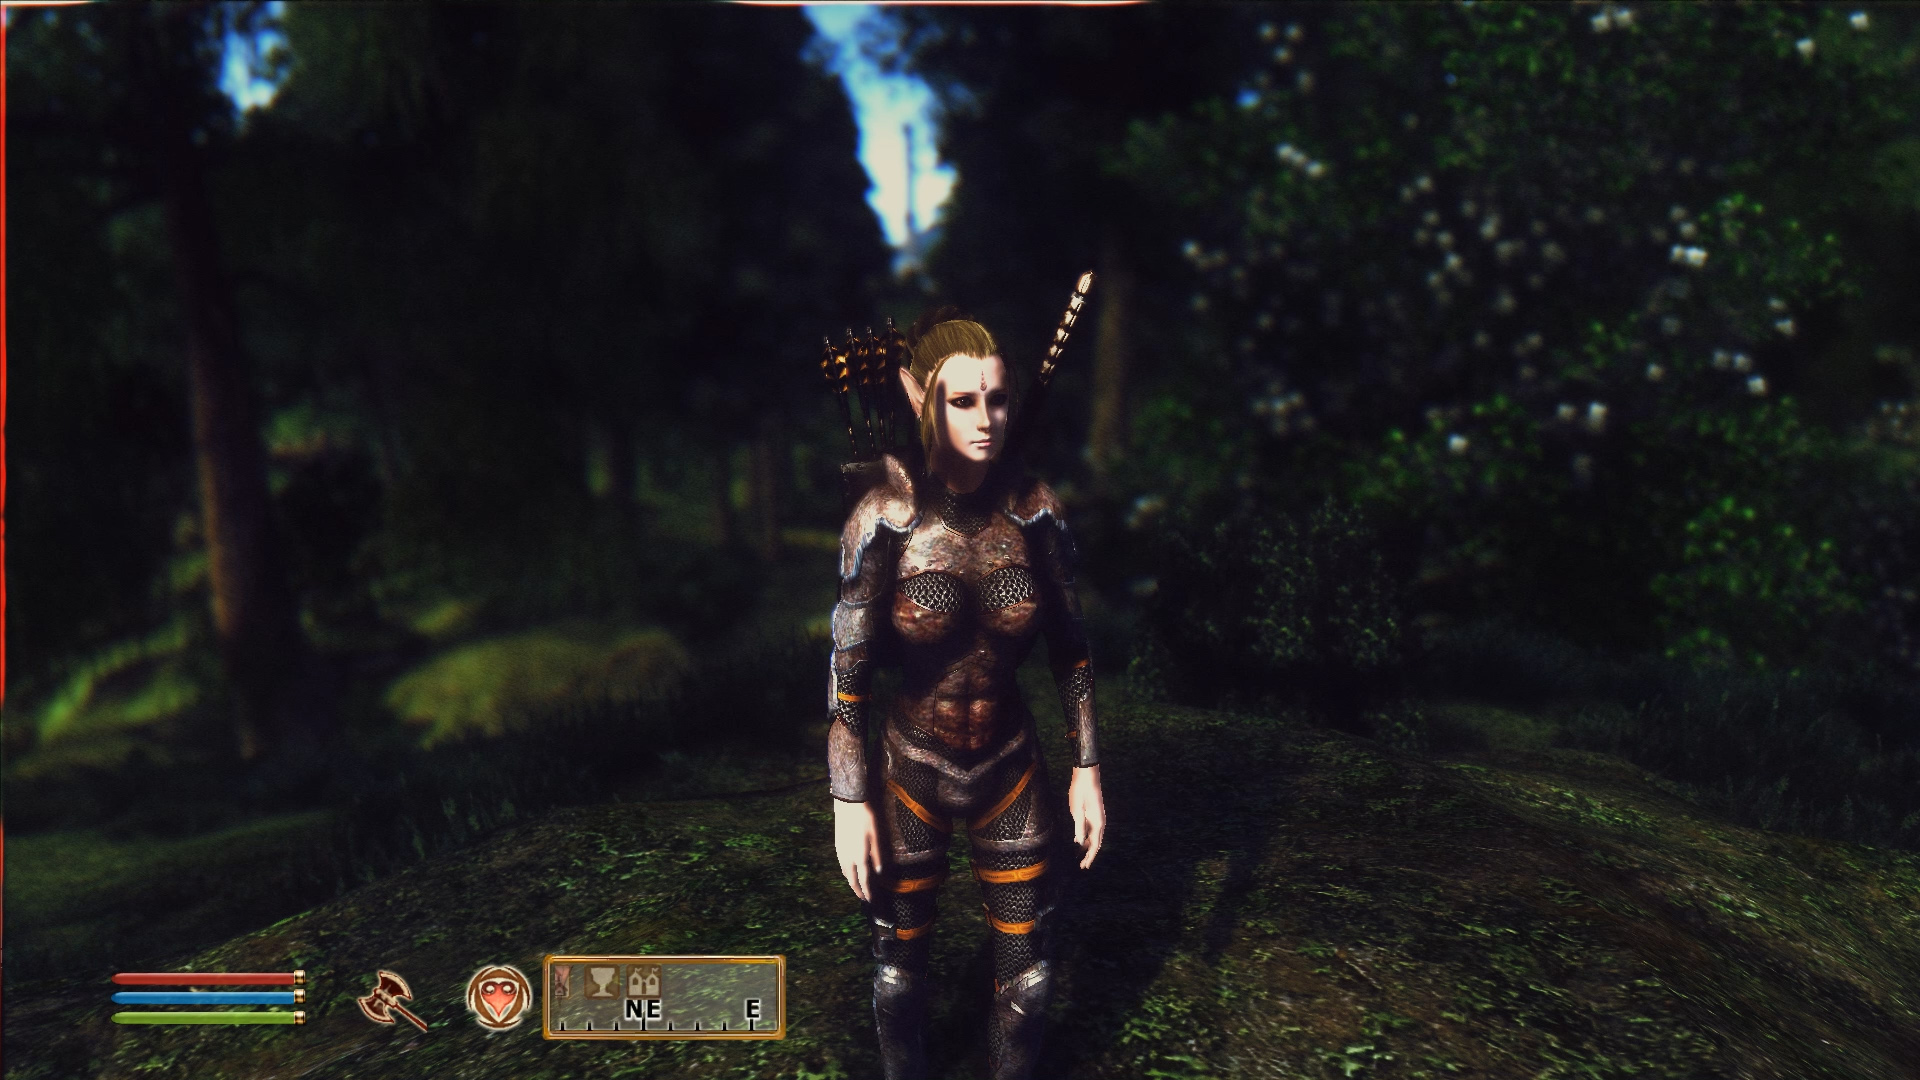 Ayla- My newest character